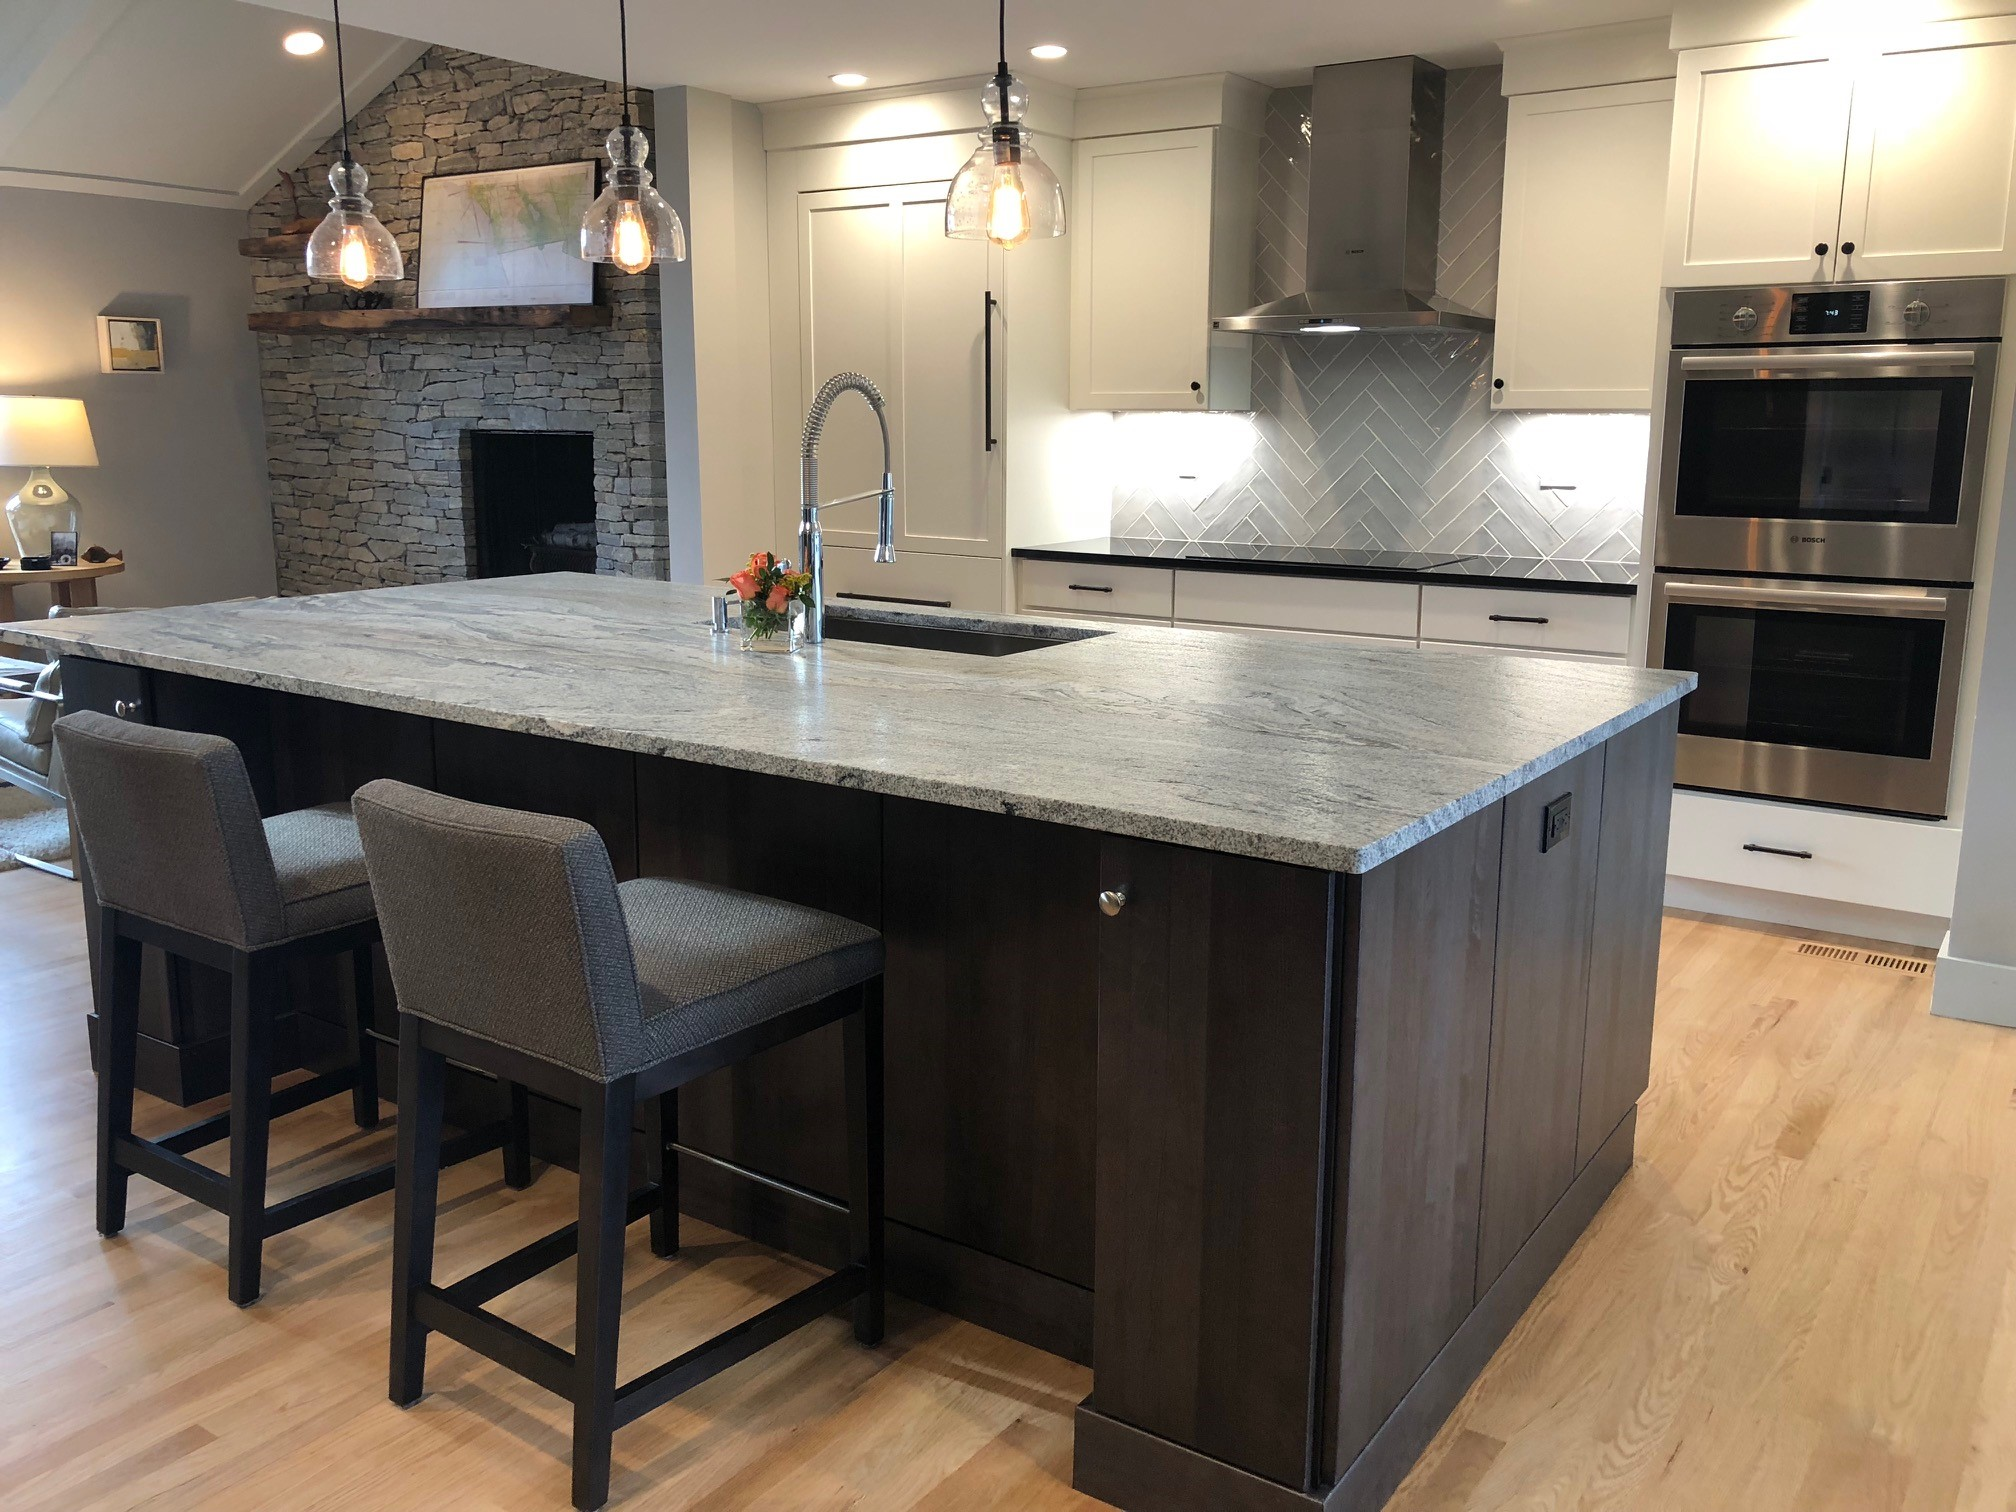 A new kitchen designed for the Figliuzzi/Philips home in West Suffield